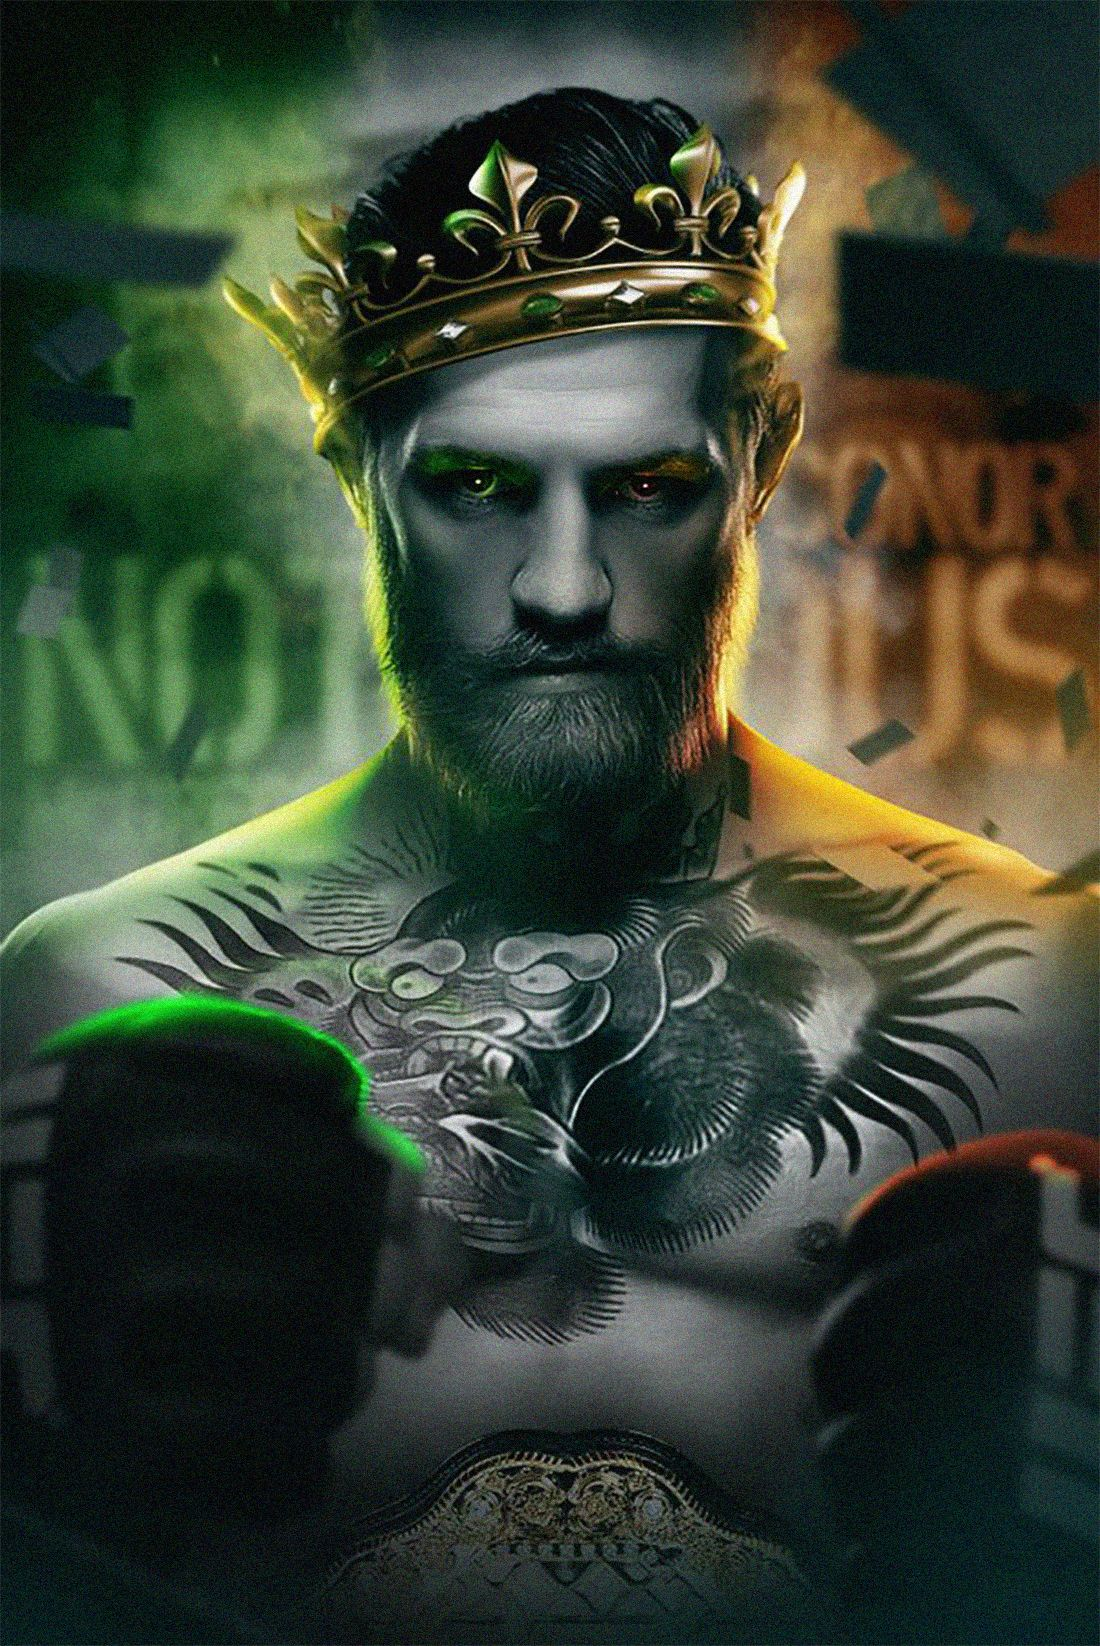 Ufc Collection On Behance Ufc Conor Mcgregor Conor Mcgregor Conor Mcgregor Wallpaper